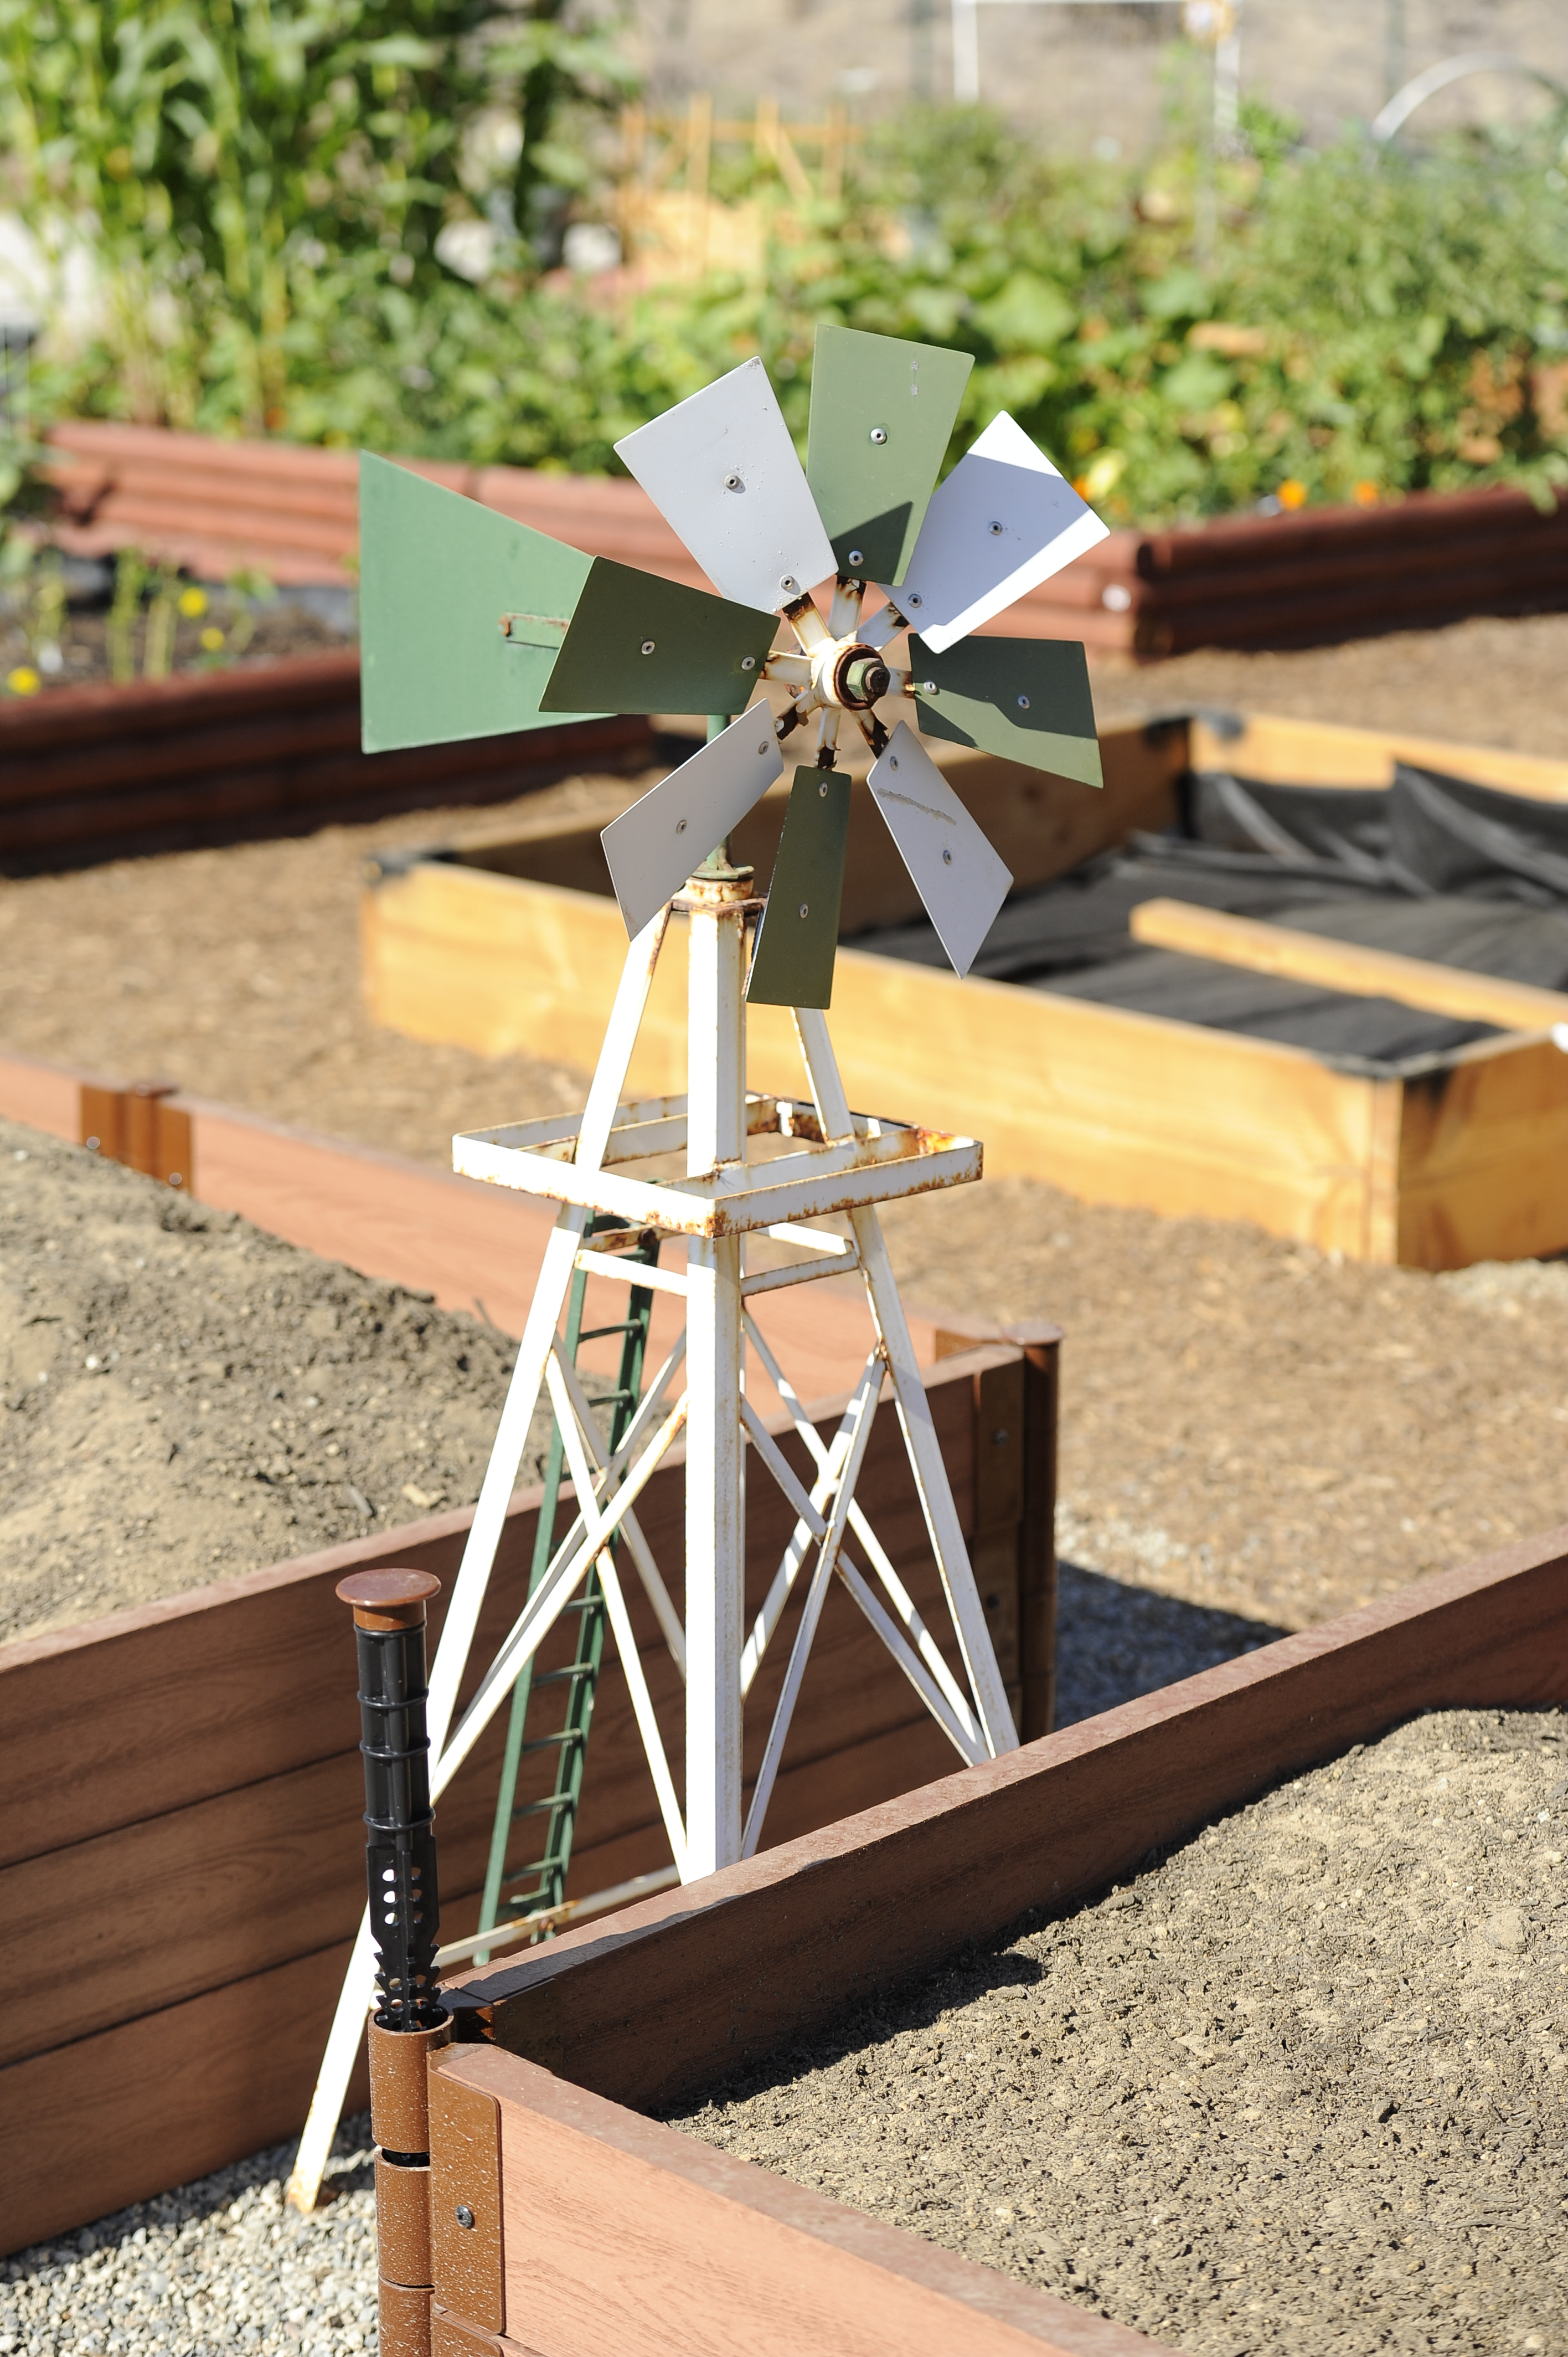 Metal windmill standing in between 2 garden plots